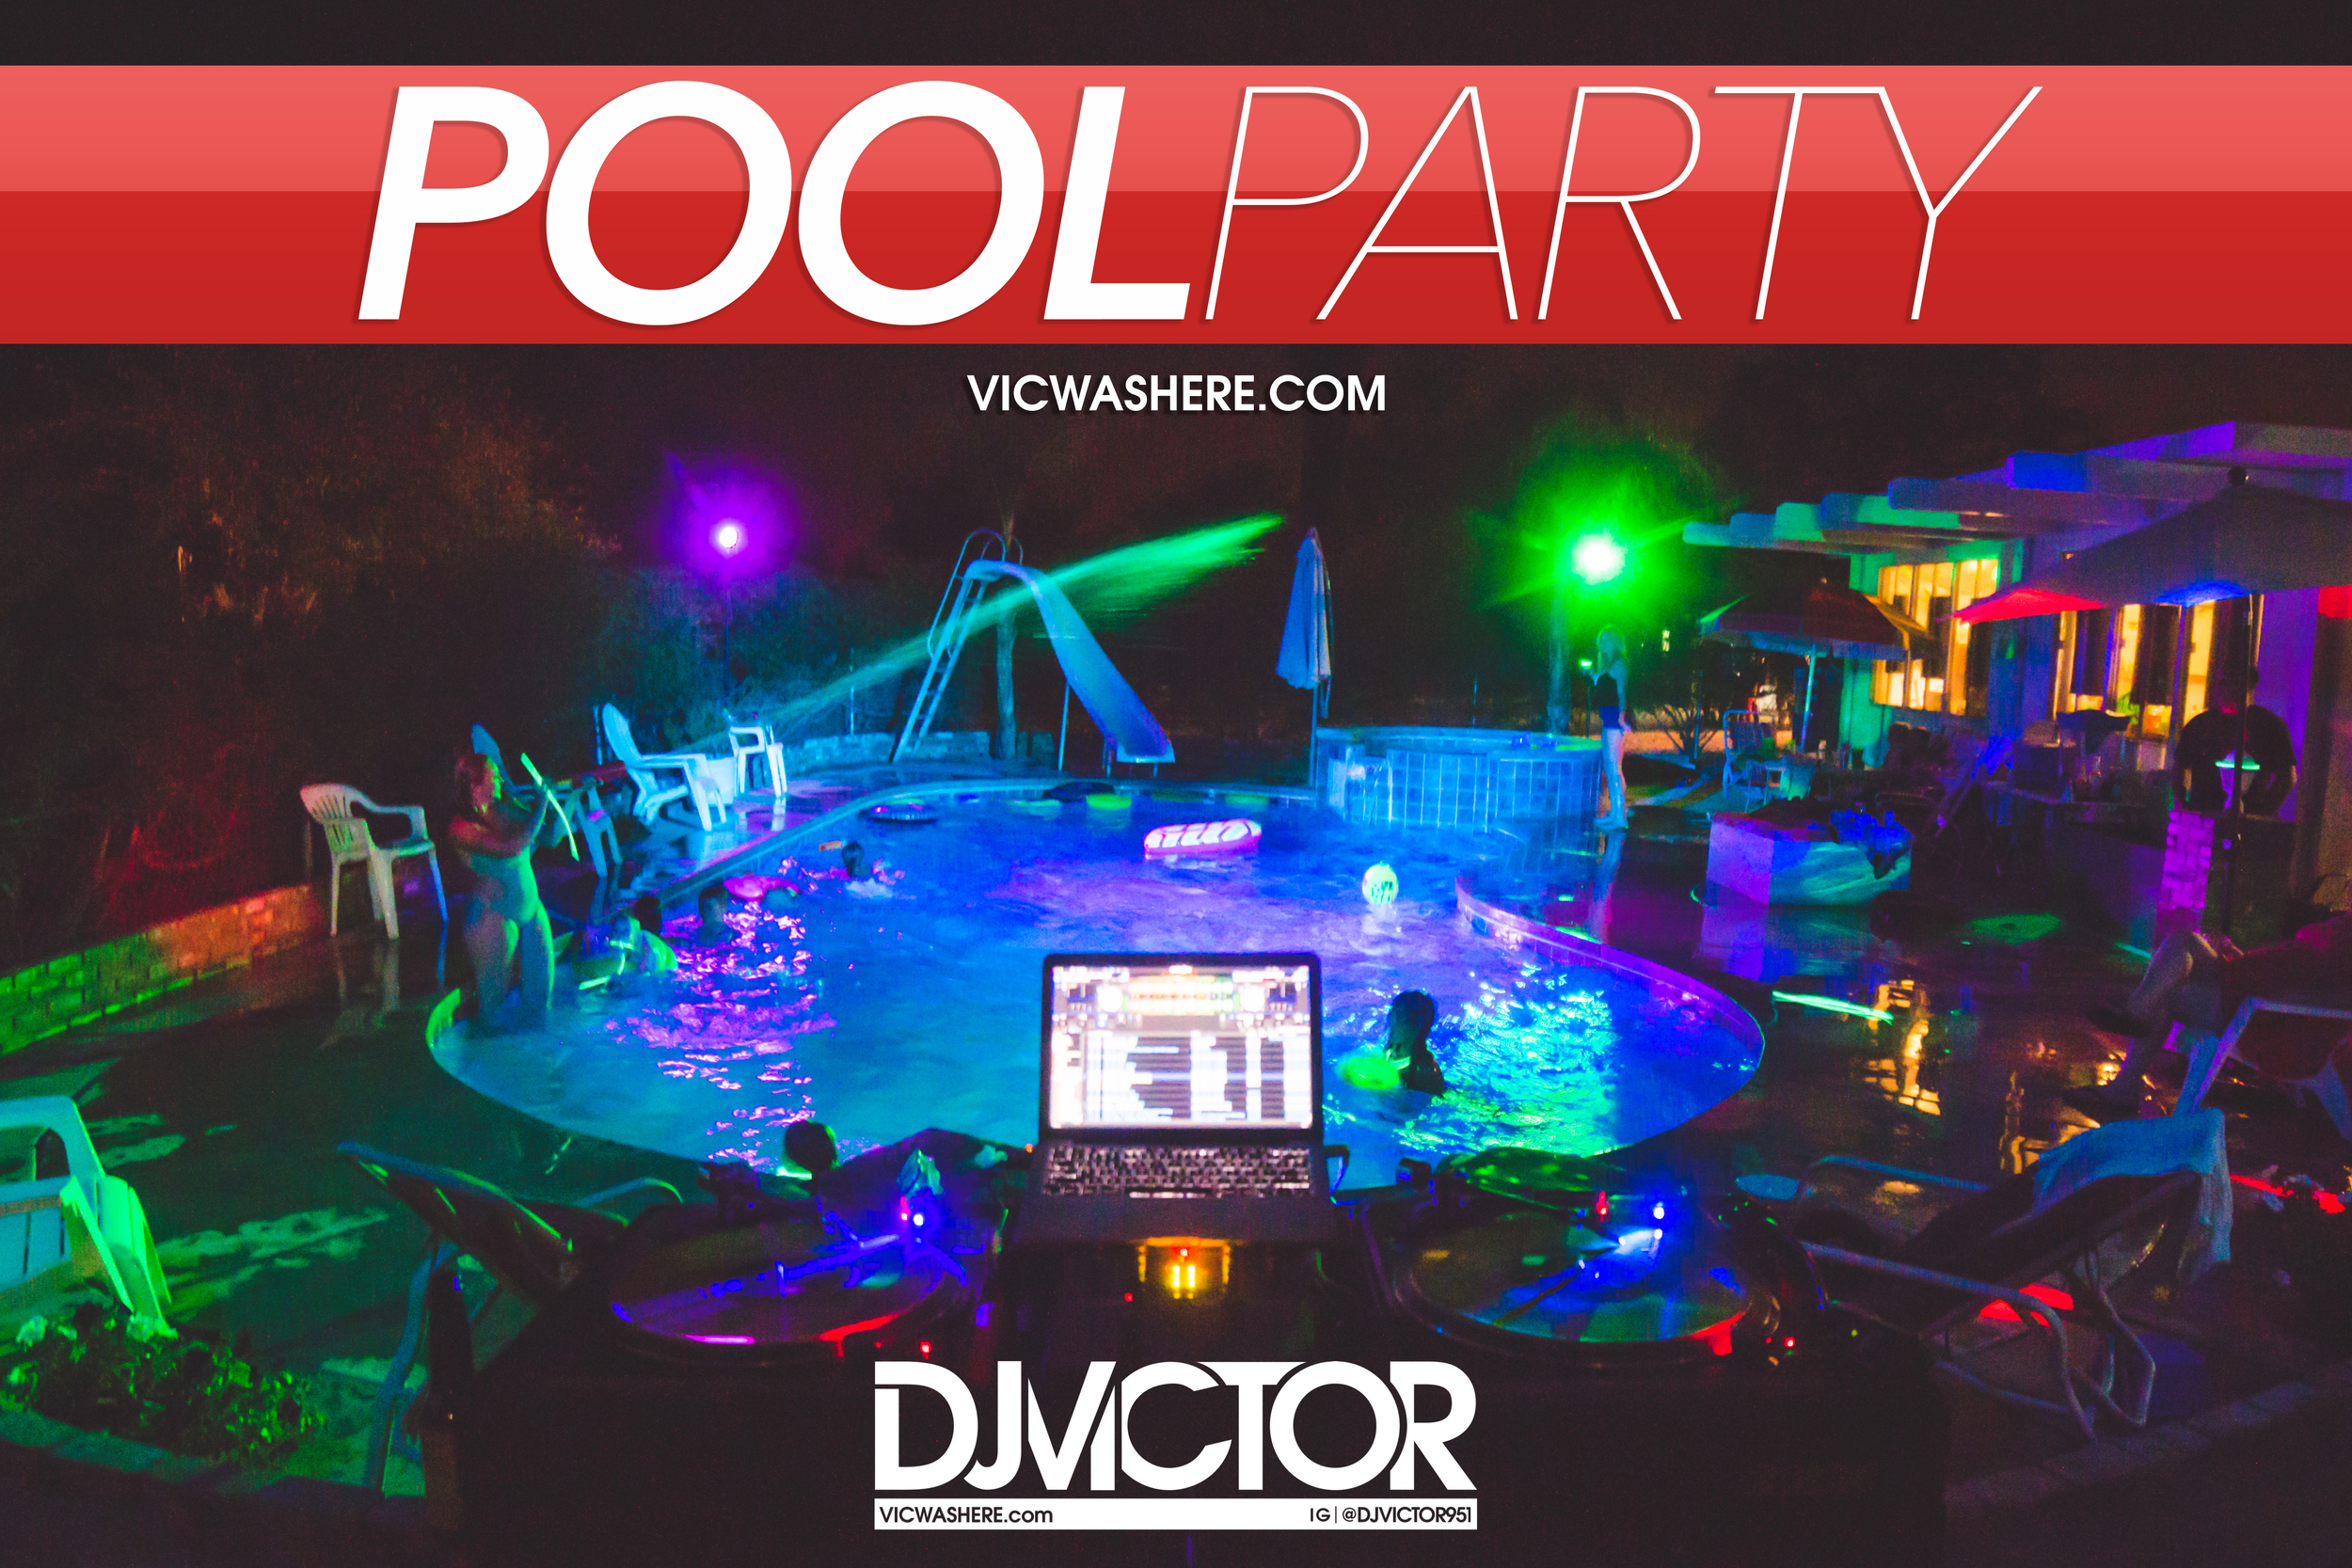 djvictor pool party.jpg